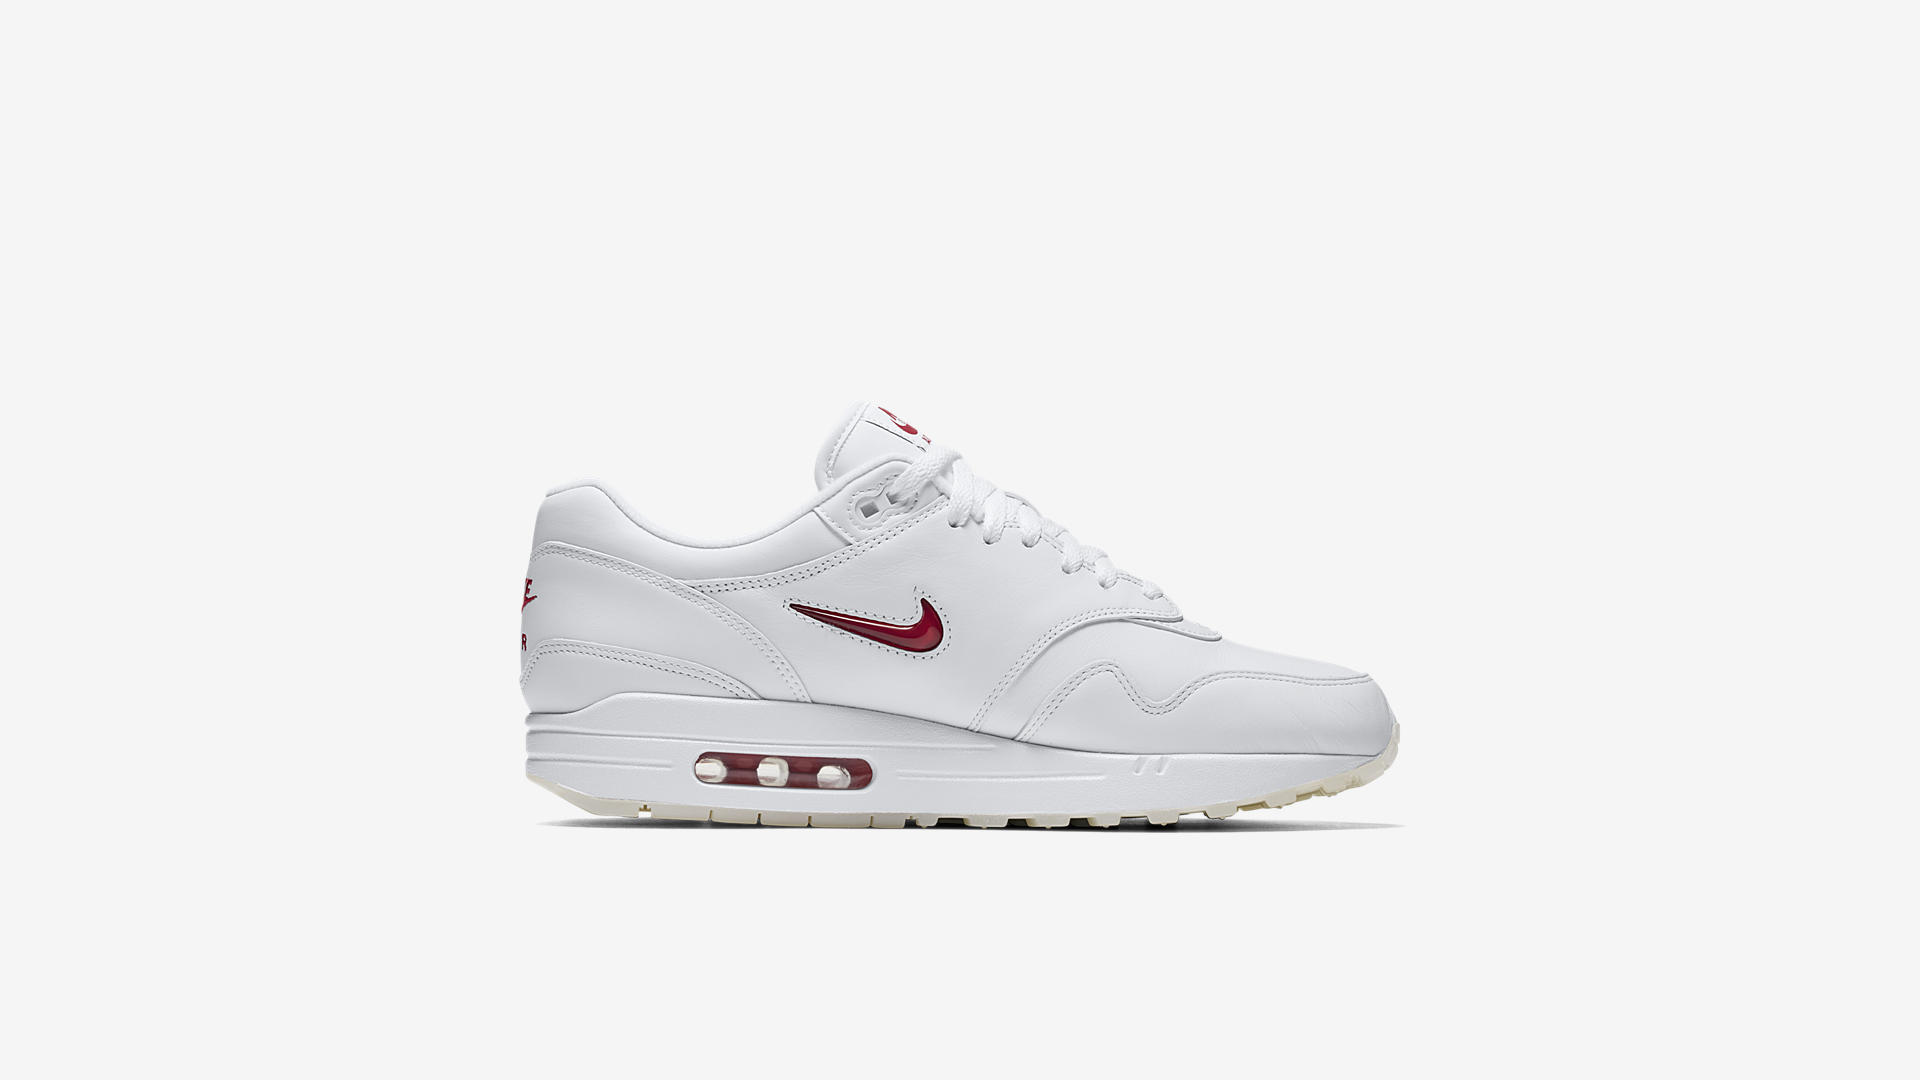 Nike Air Max 1 Jewel Rare Ruby 918354 104 4